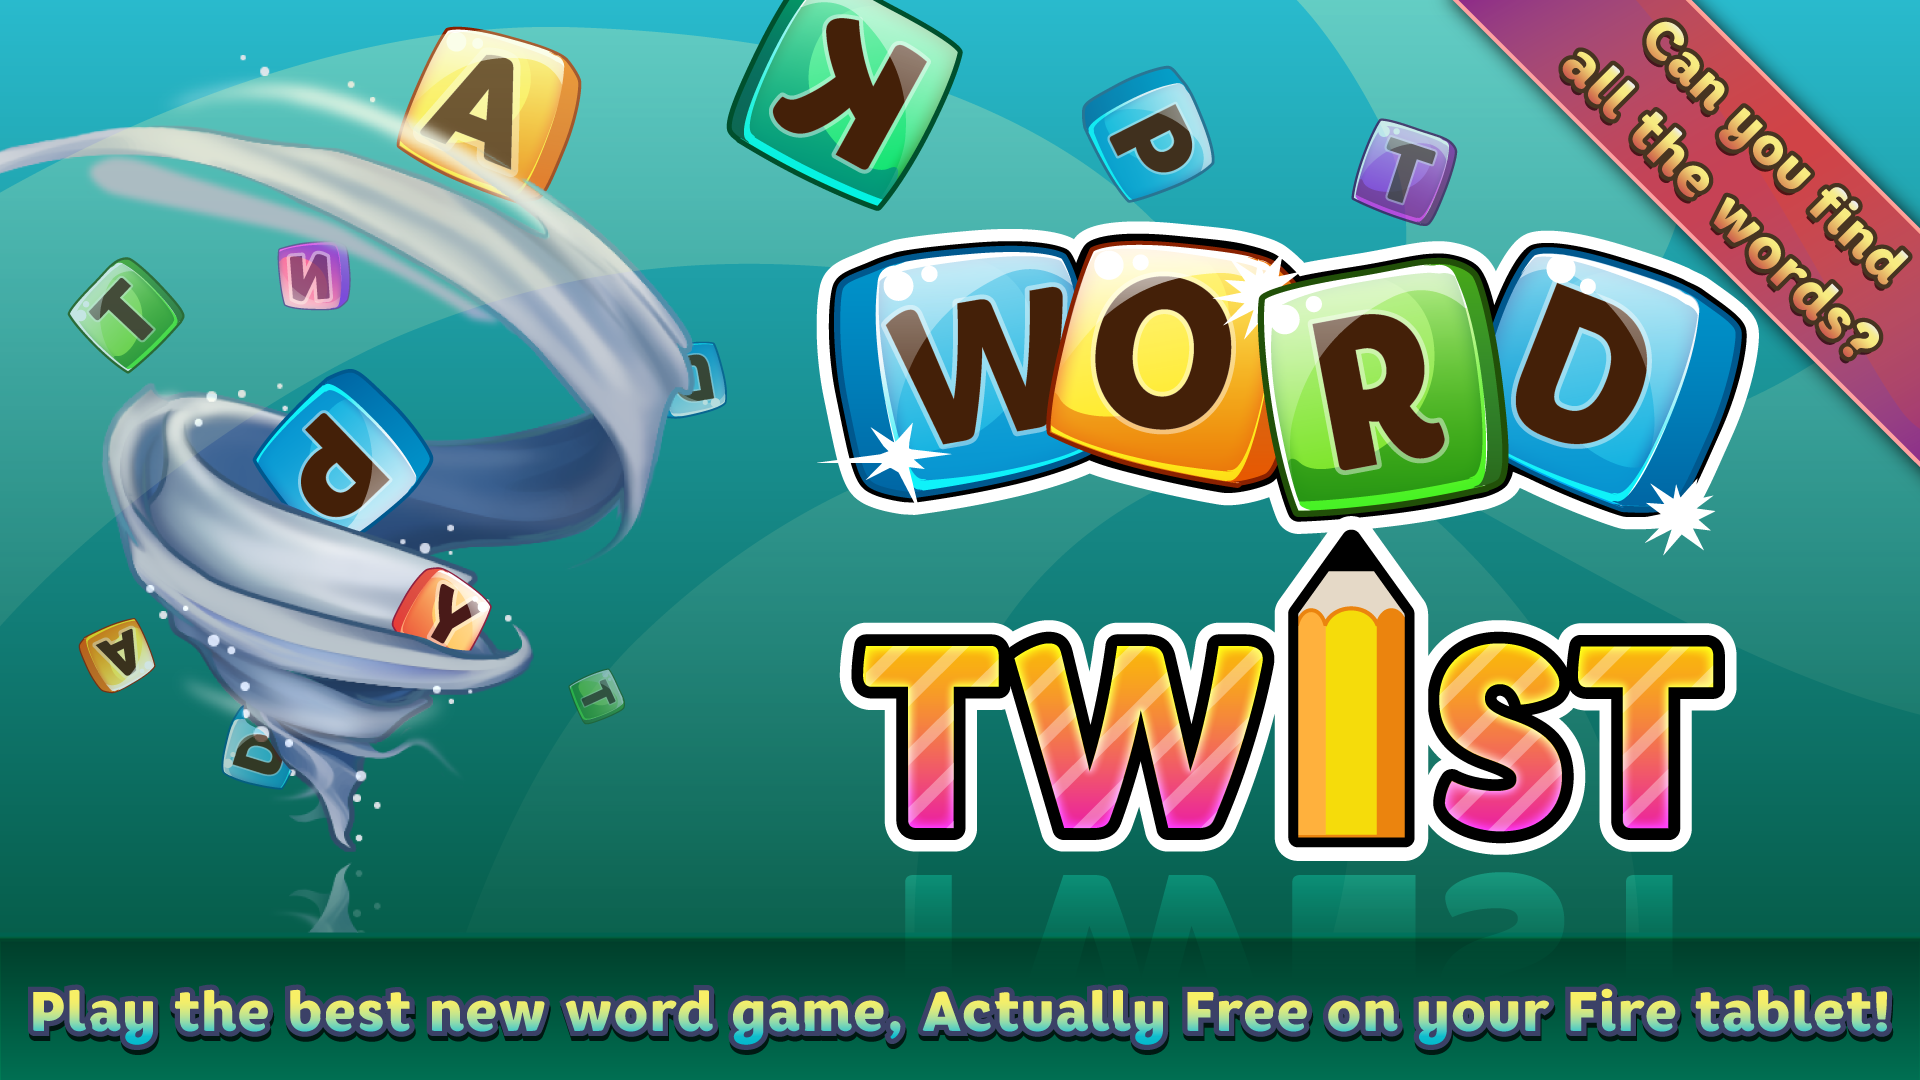 Amazon.com: Word Twist: Appstore for Android